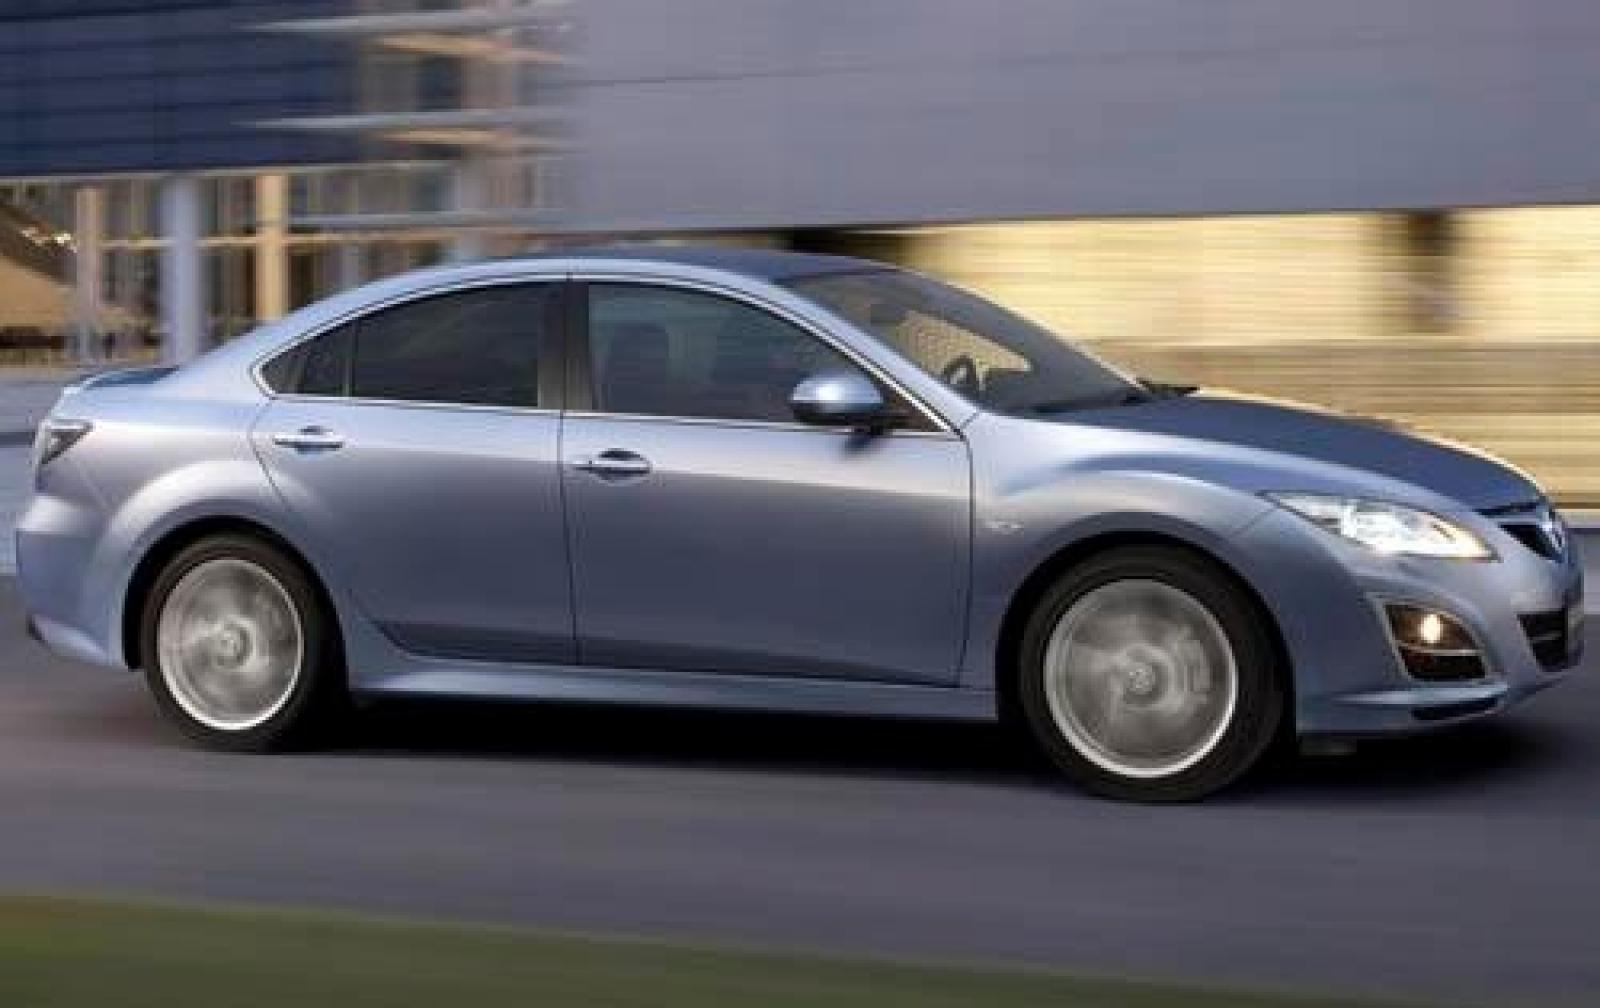 2011 mazda mazda6 information and photos zombiedrive. Black Bedroom Furniture Sets. Home Design Ideas